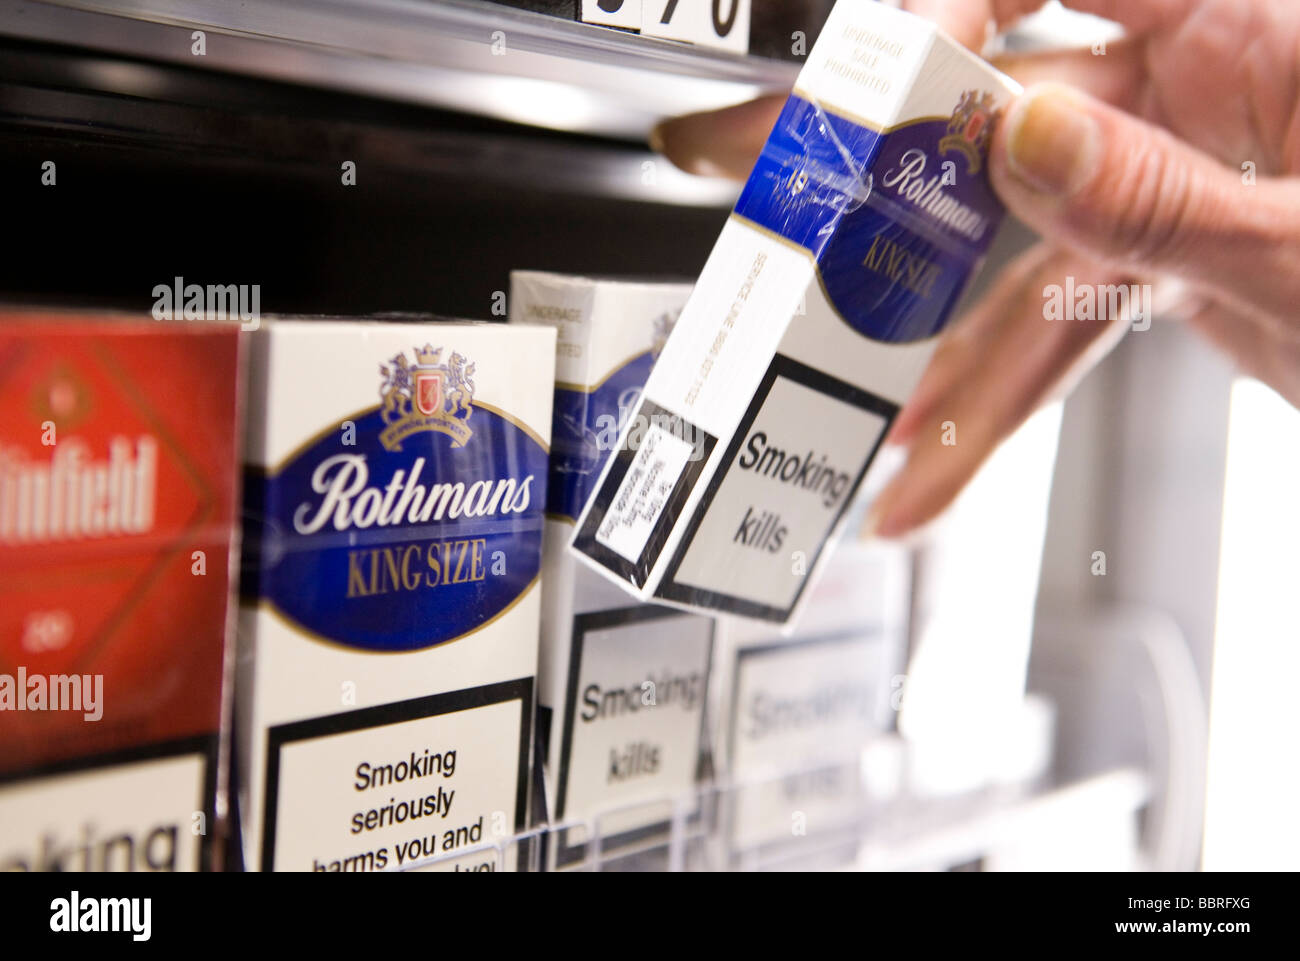 Buy Dunhill cigarettes in Georgia